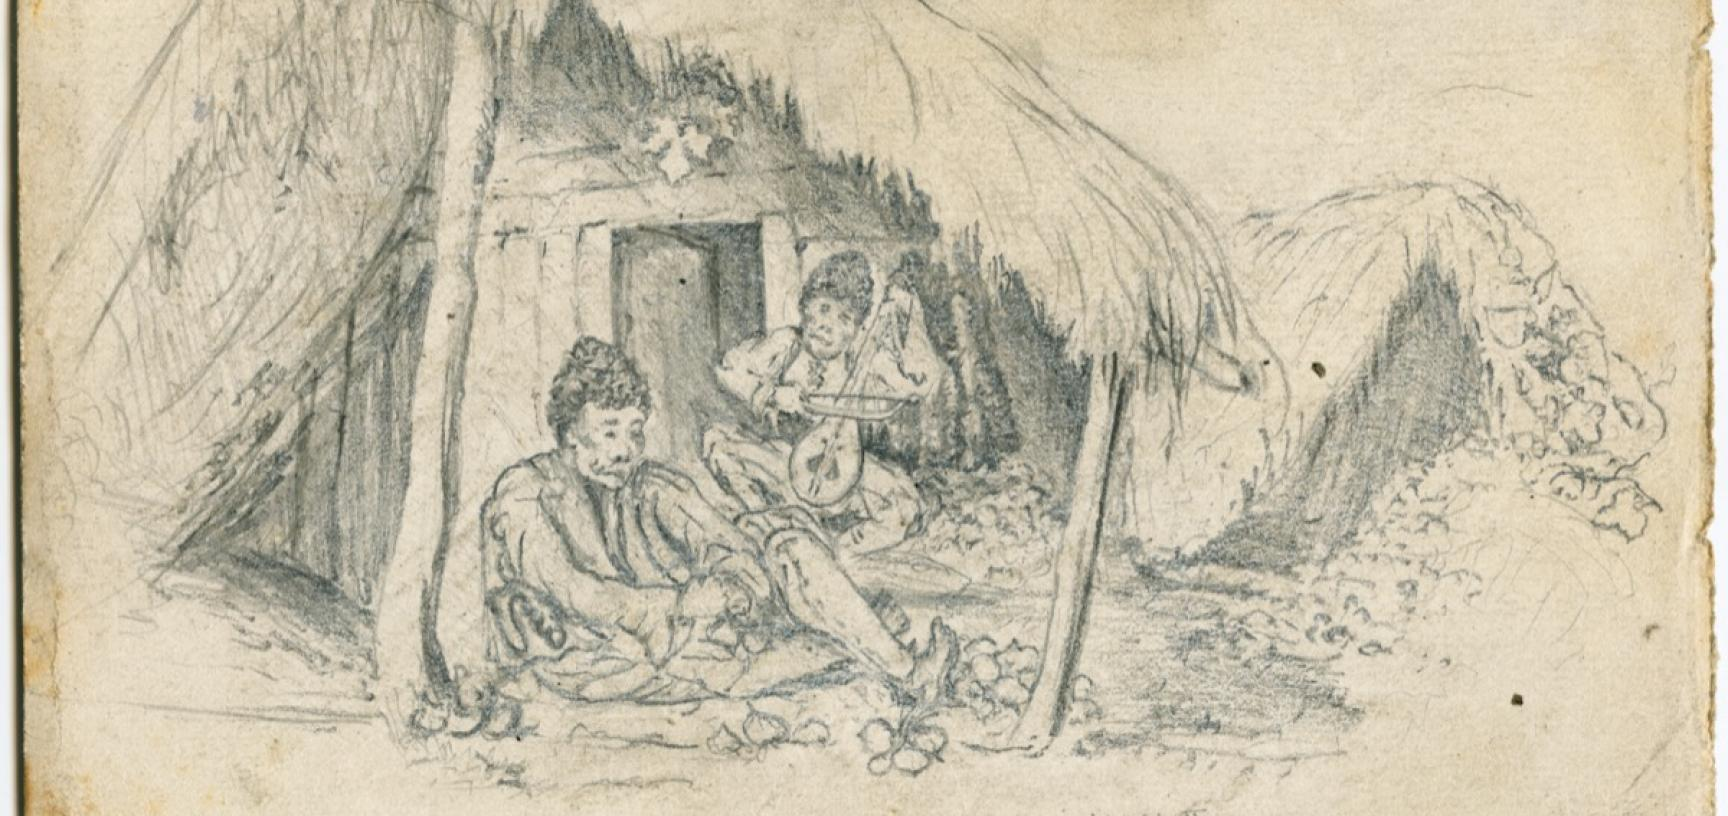 Pencil sketch of two men sitting beneath the porch of a thatched building, identified as Bulgarians at a small Bulgarian settlement in Maksimir Park on the outskirts of Zagreb, Croatia. One of the men is tying bunches of onions, preparing the crop for sal